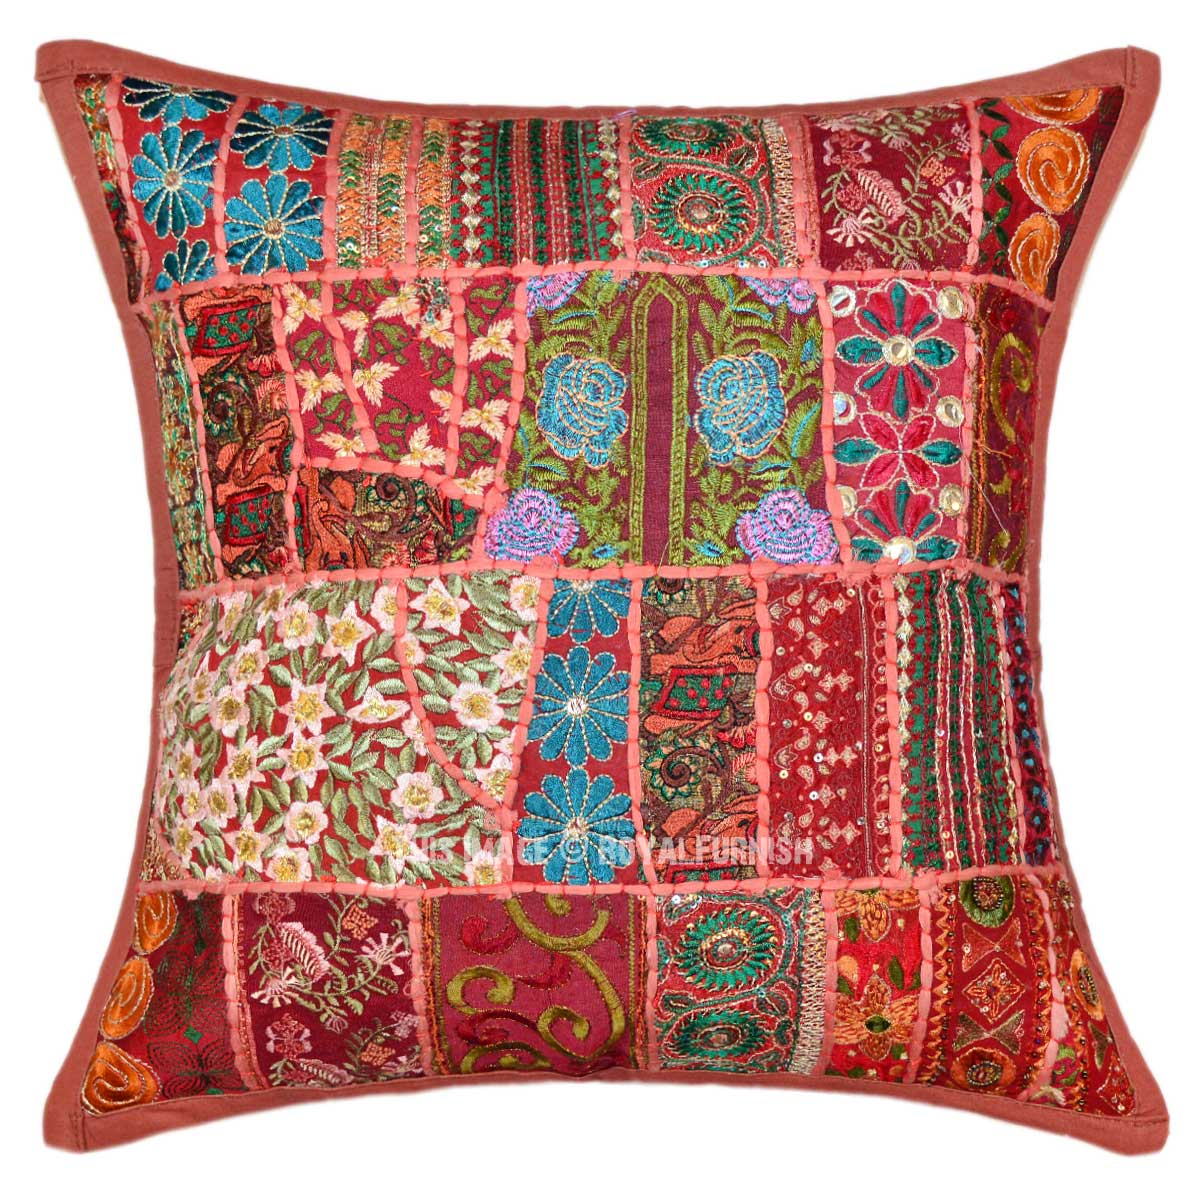 Brown Unique Multi Embroidered Patchwork Accent Pillow